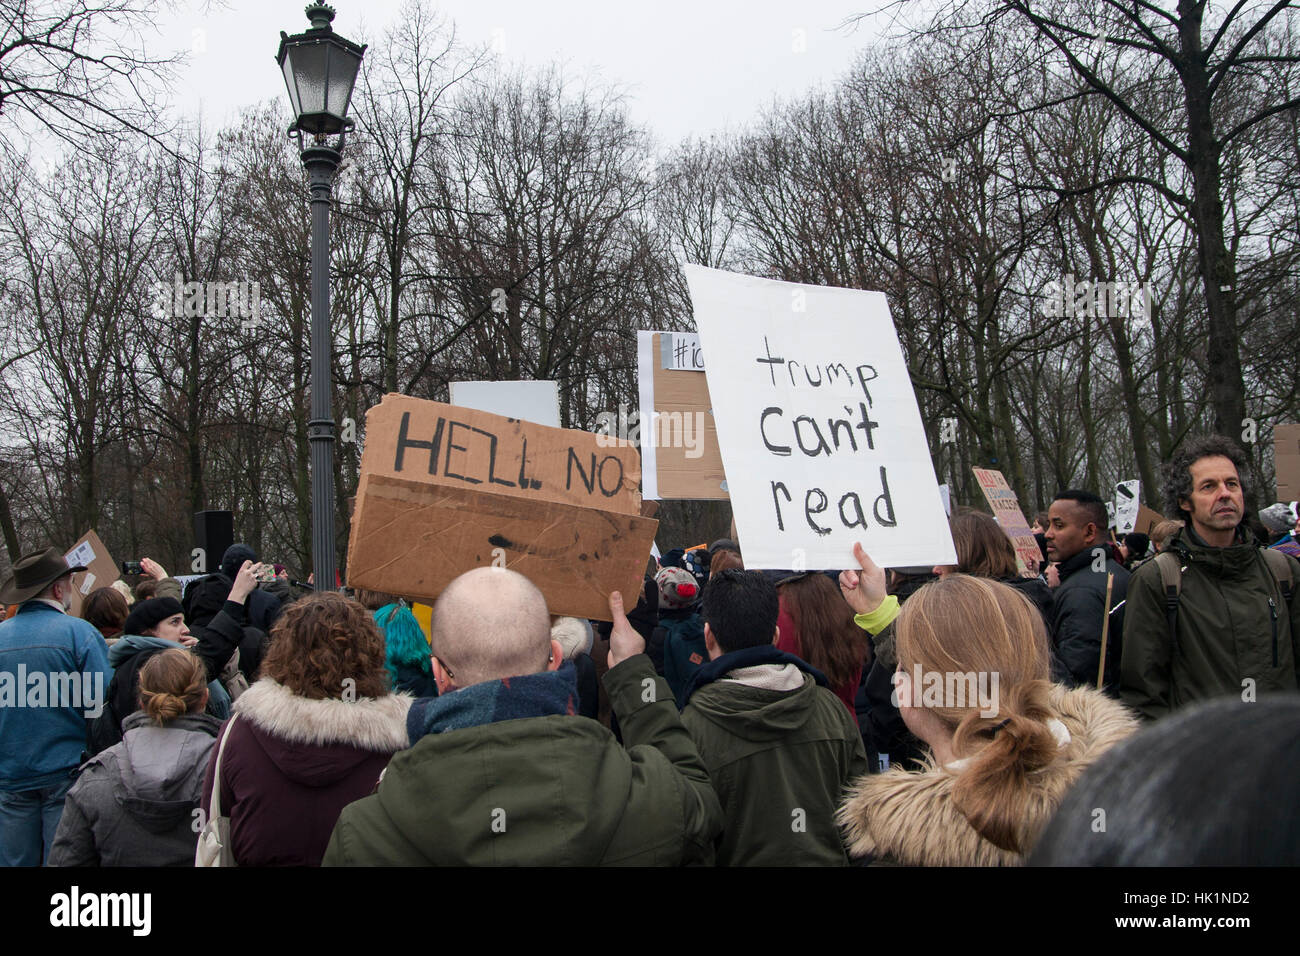 Berlin, Germany. 4th February, 2017. Protest against Donald Trump in Berlin, Germany. Credit: Michael Koenig/Alamy - Stock Image